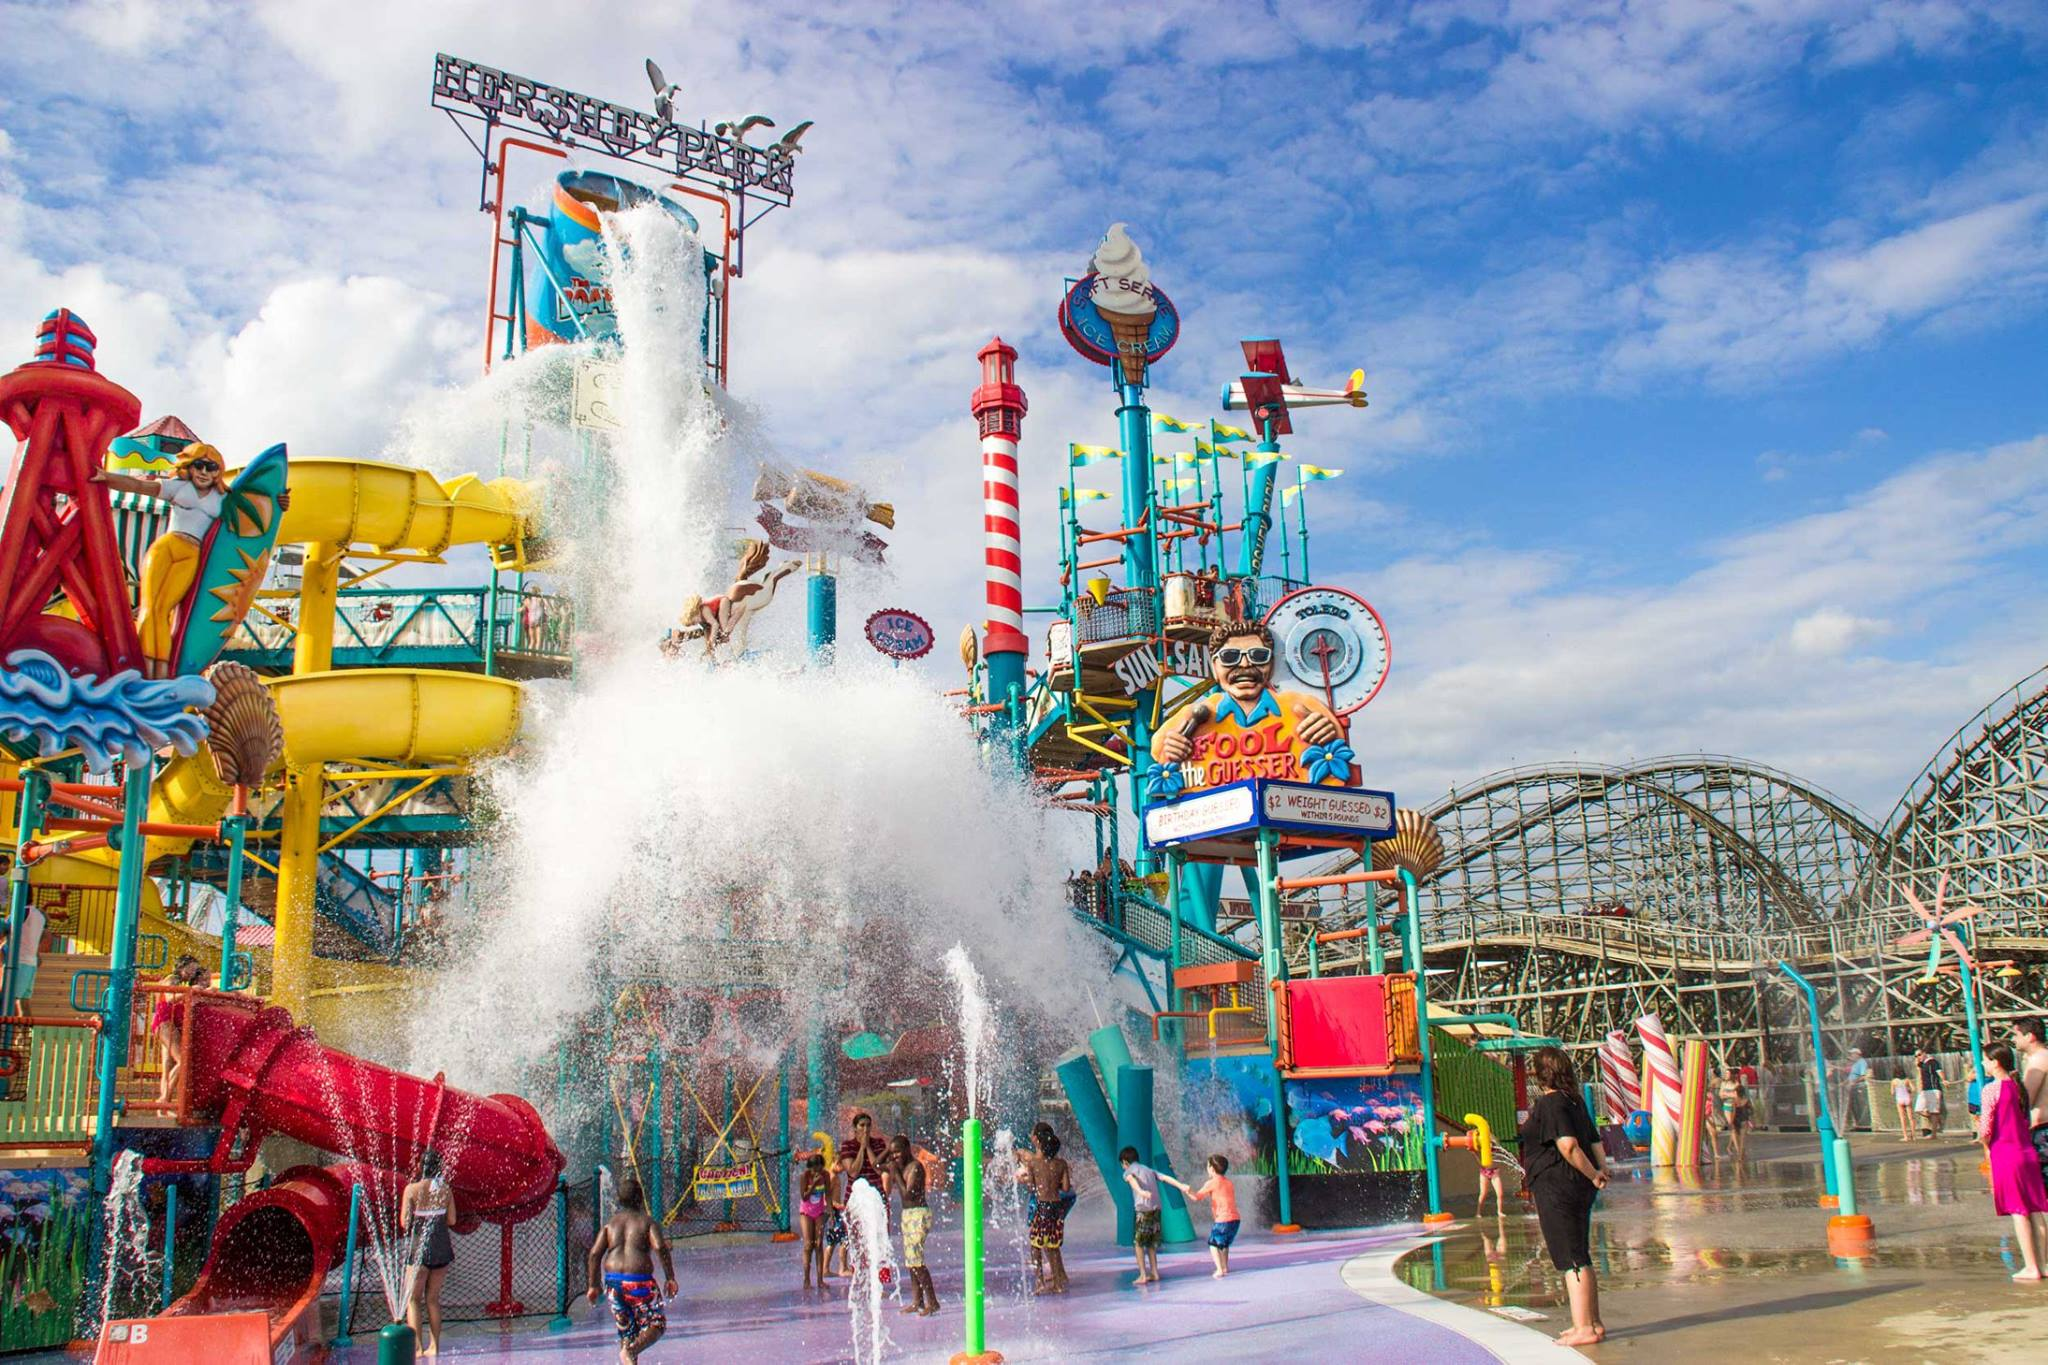 10 best waterparks around washington dc